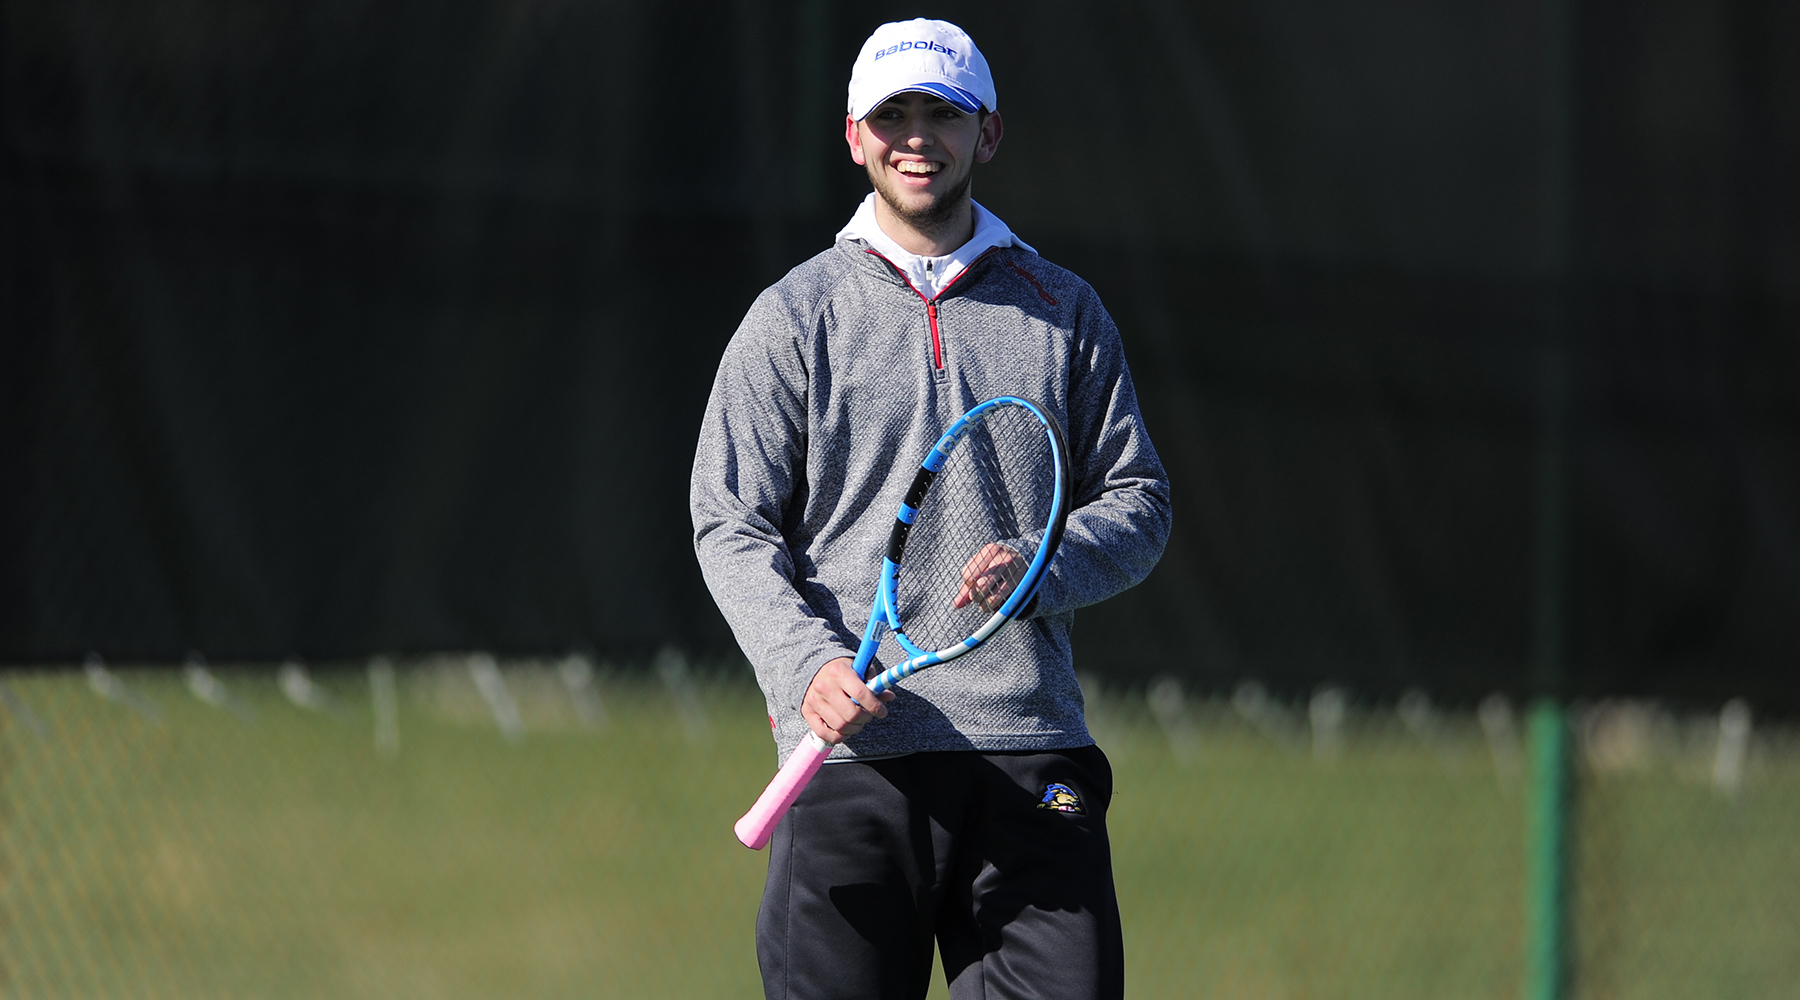 Men's Tennis' Slade Dumas Named Goucher College Athlete of the Week